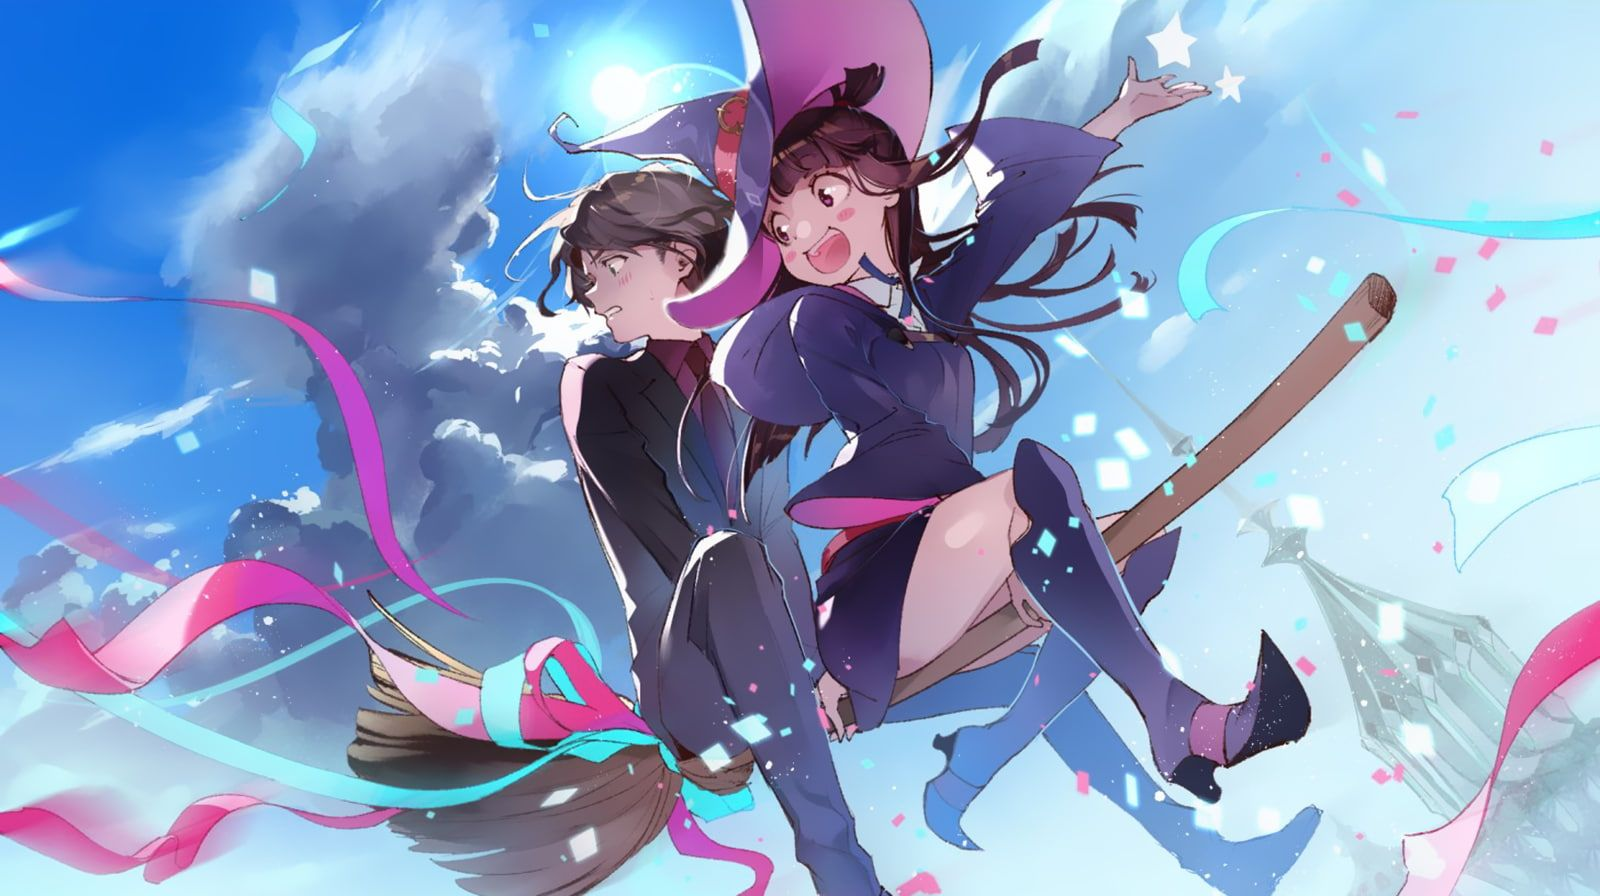 Kagari Akko Little Witch Academia 720p Wallpaper Hdwallpaper